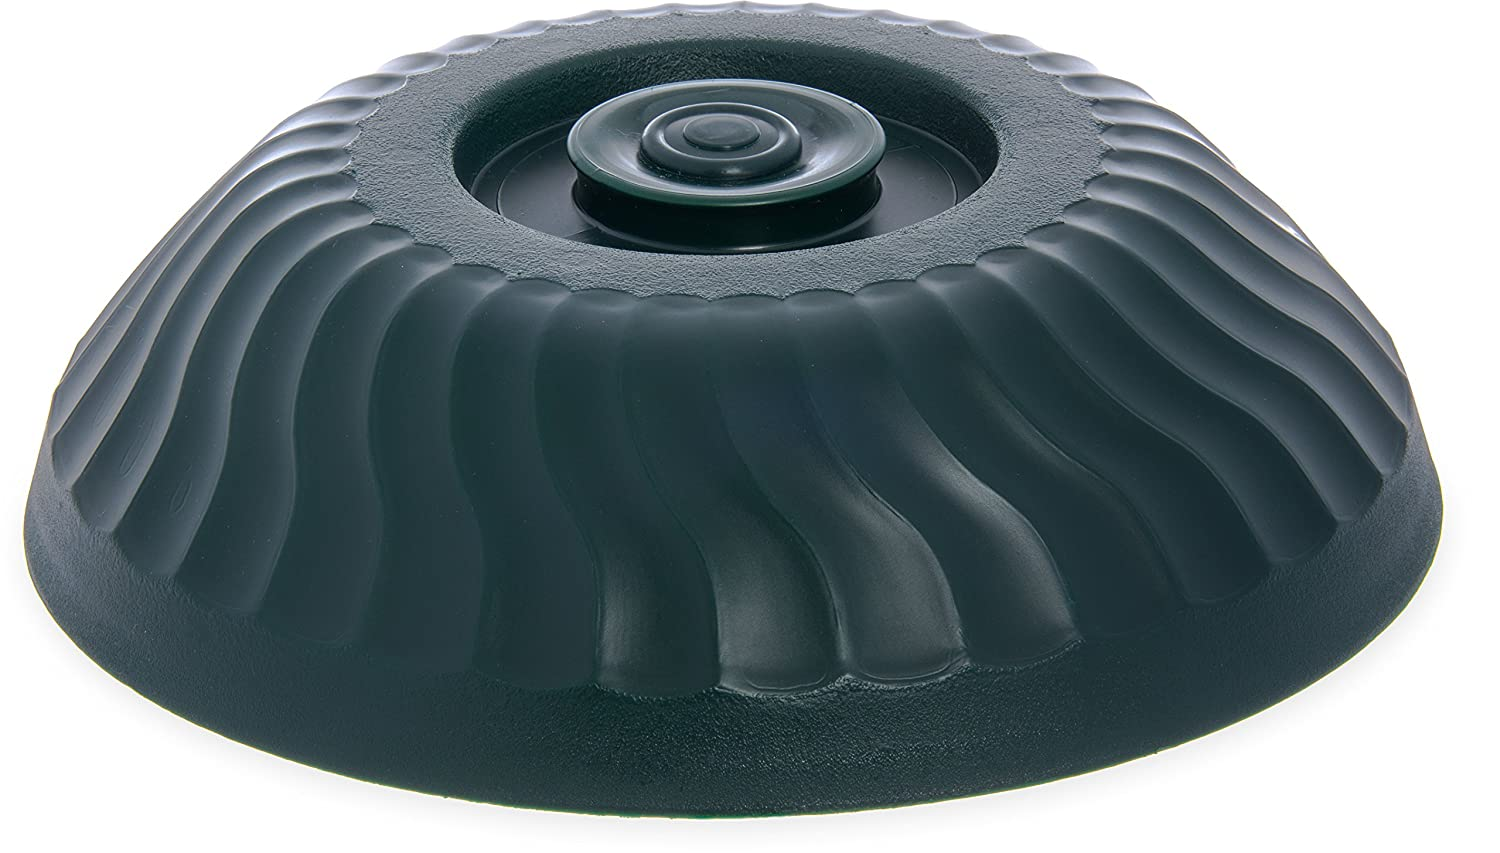 Dinex DX340061 Turnbury Insulated Plate Dome Cover, 2.88